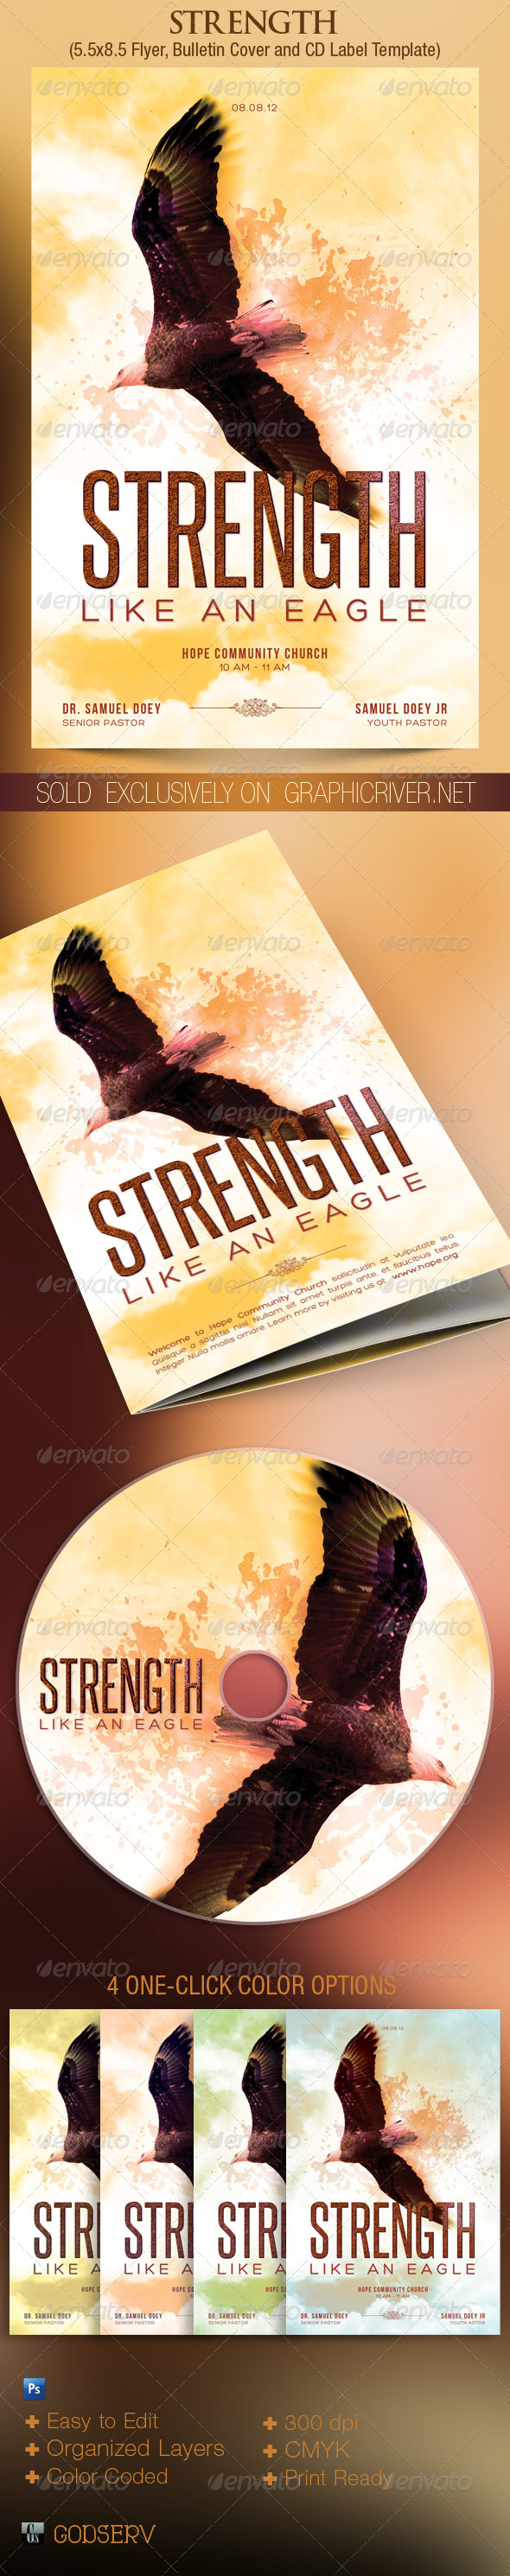 Strength Flyer, Bulletin Cover and CD Label - Church Flyers